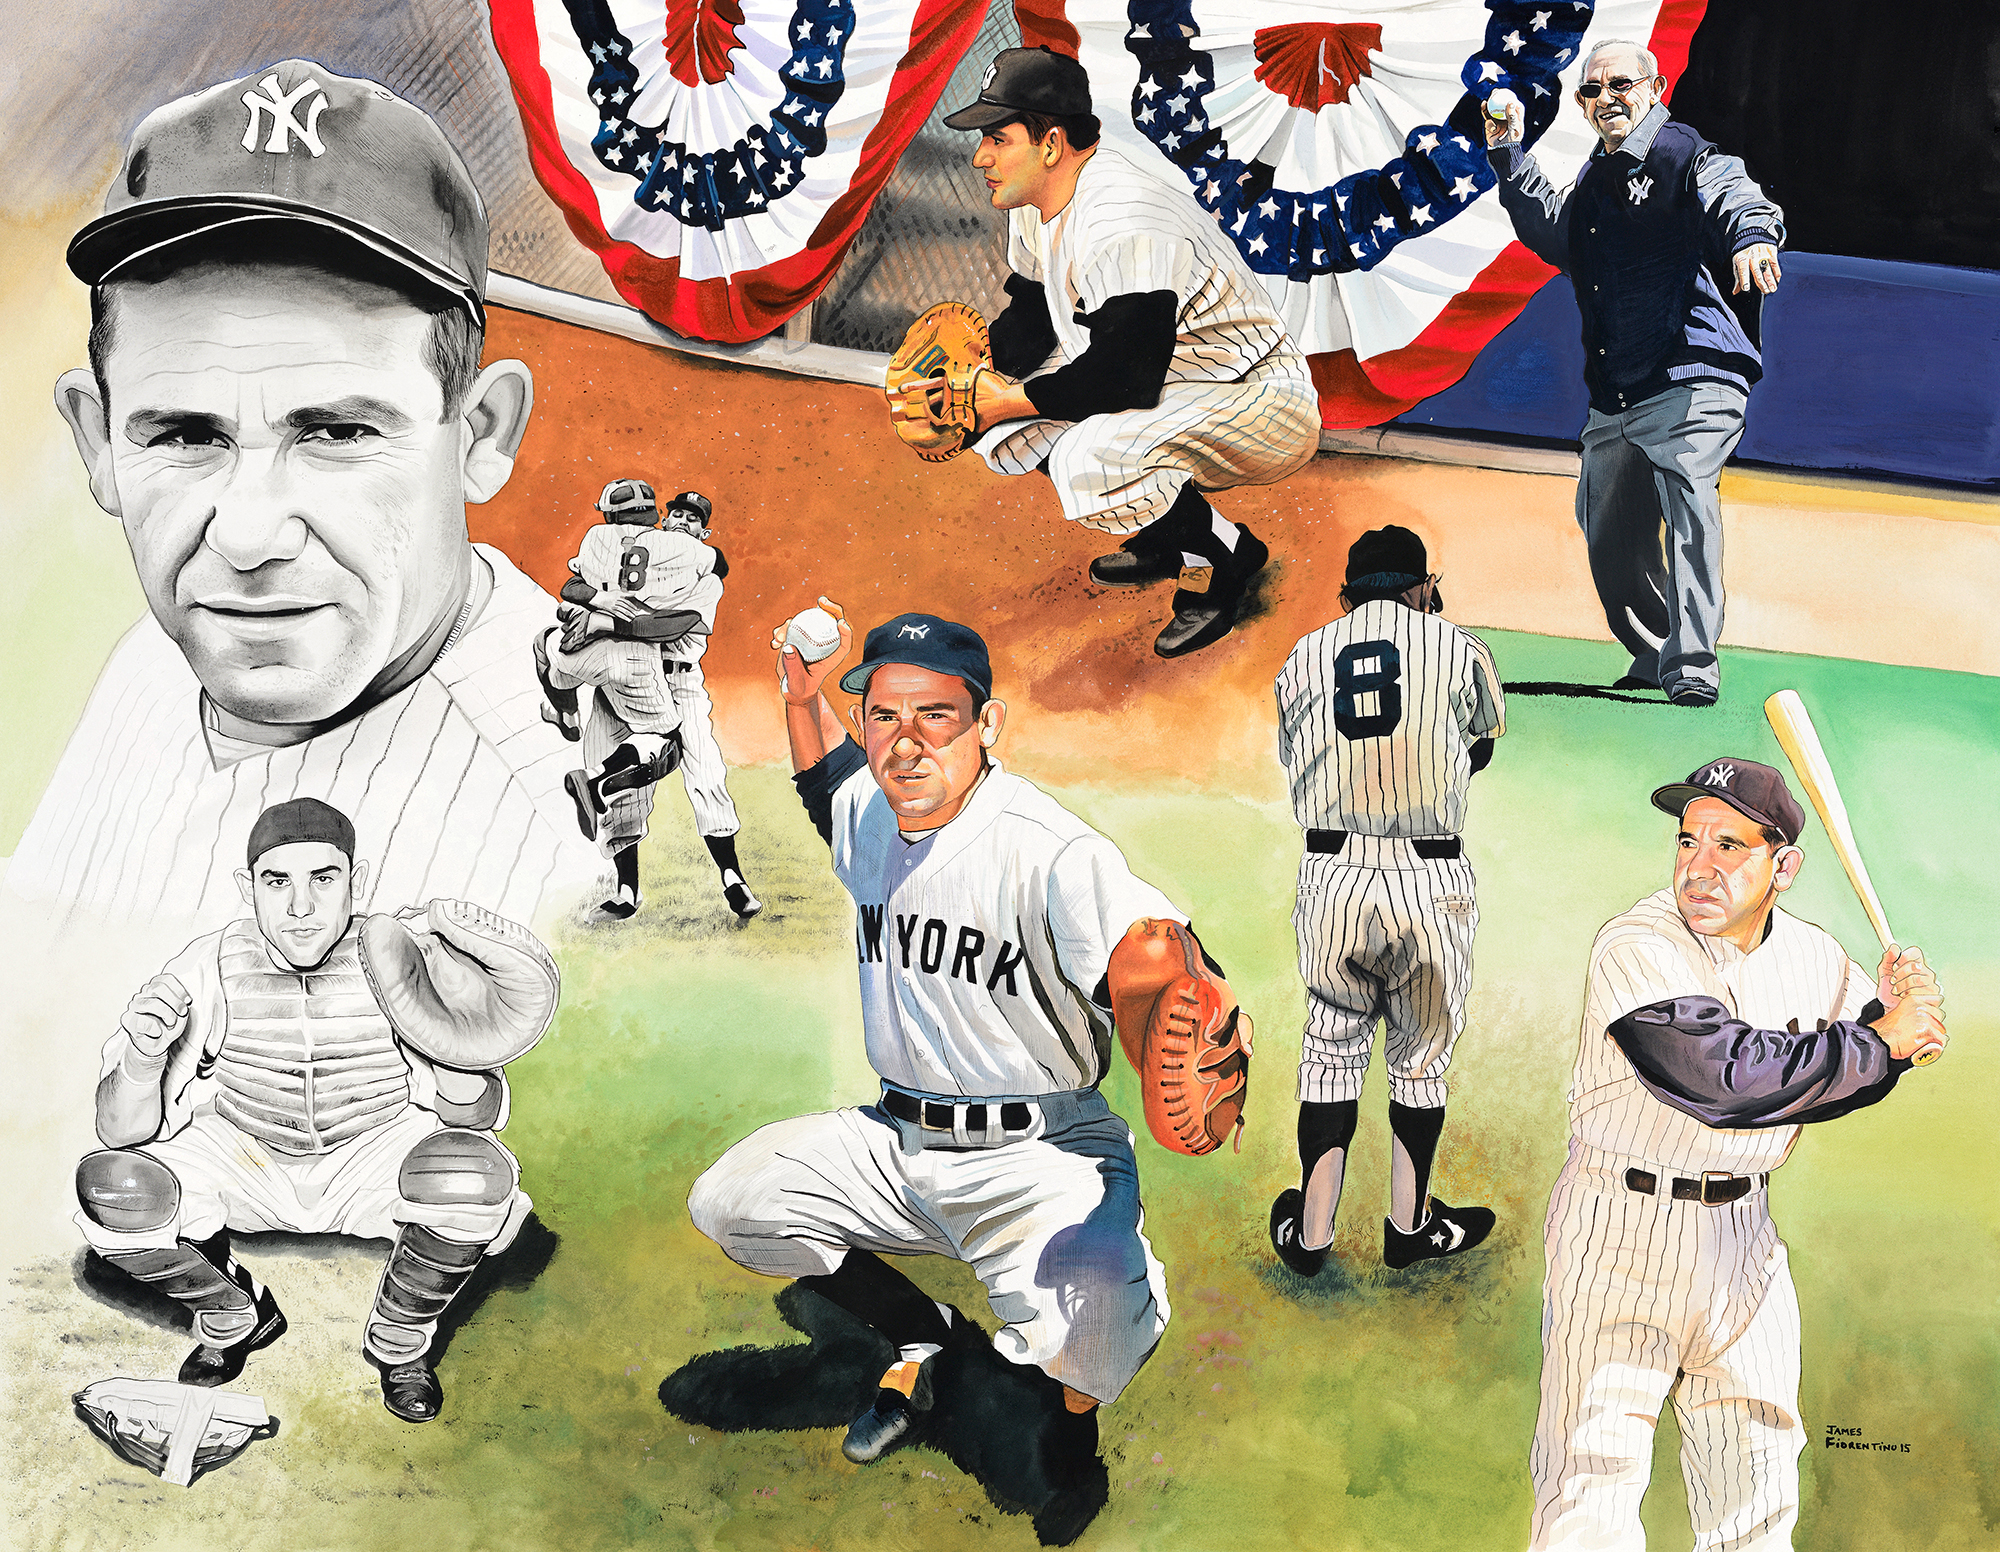 Tribute to the Life of Yogi Berra